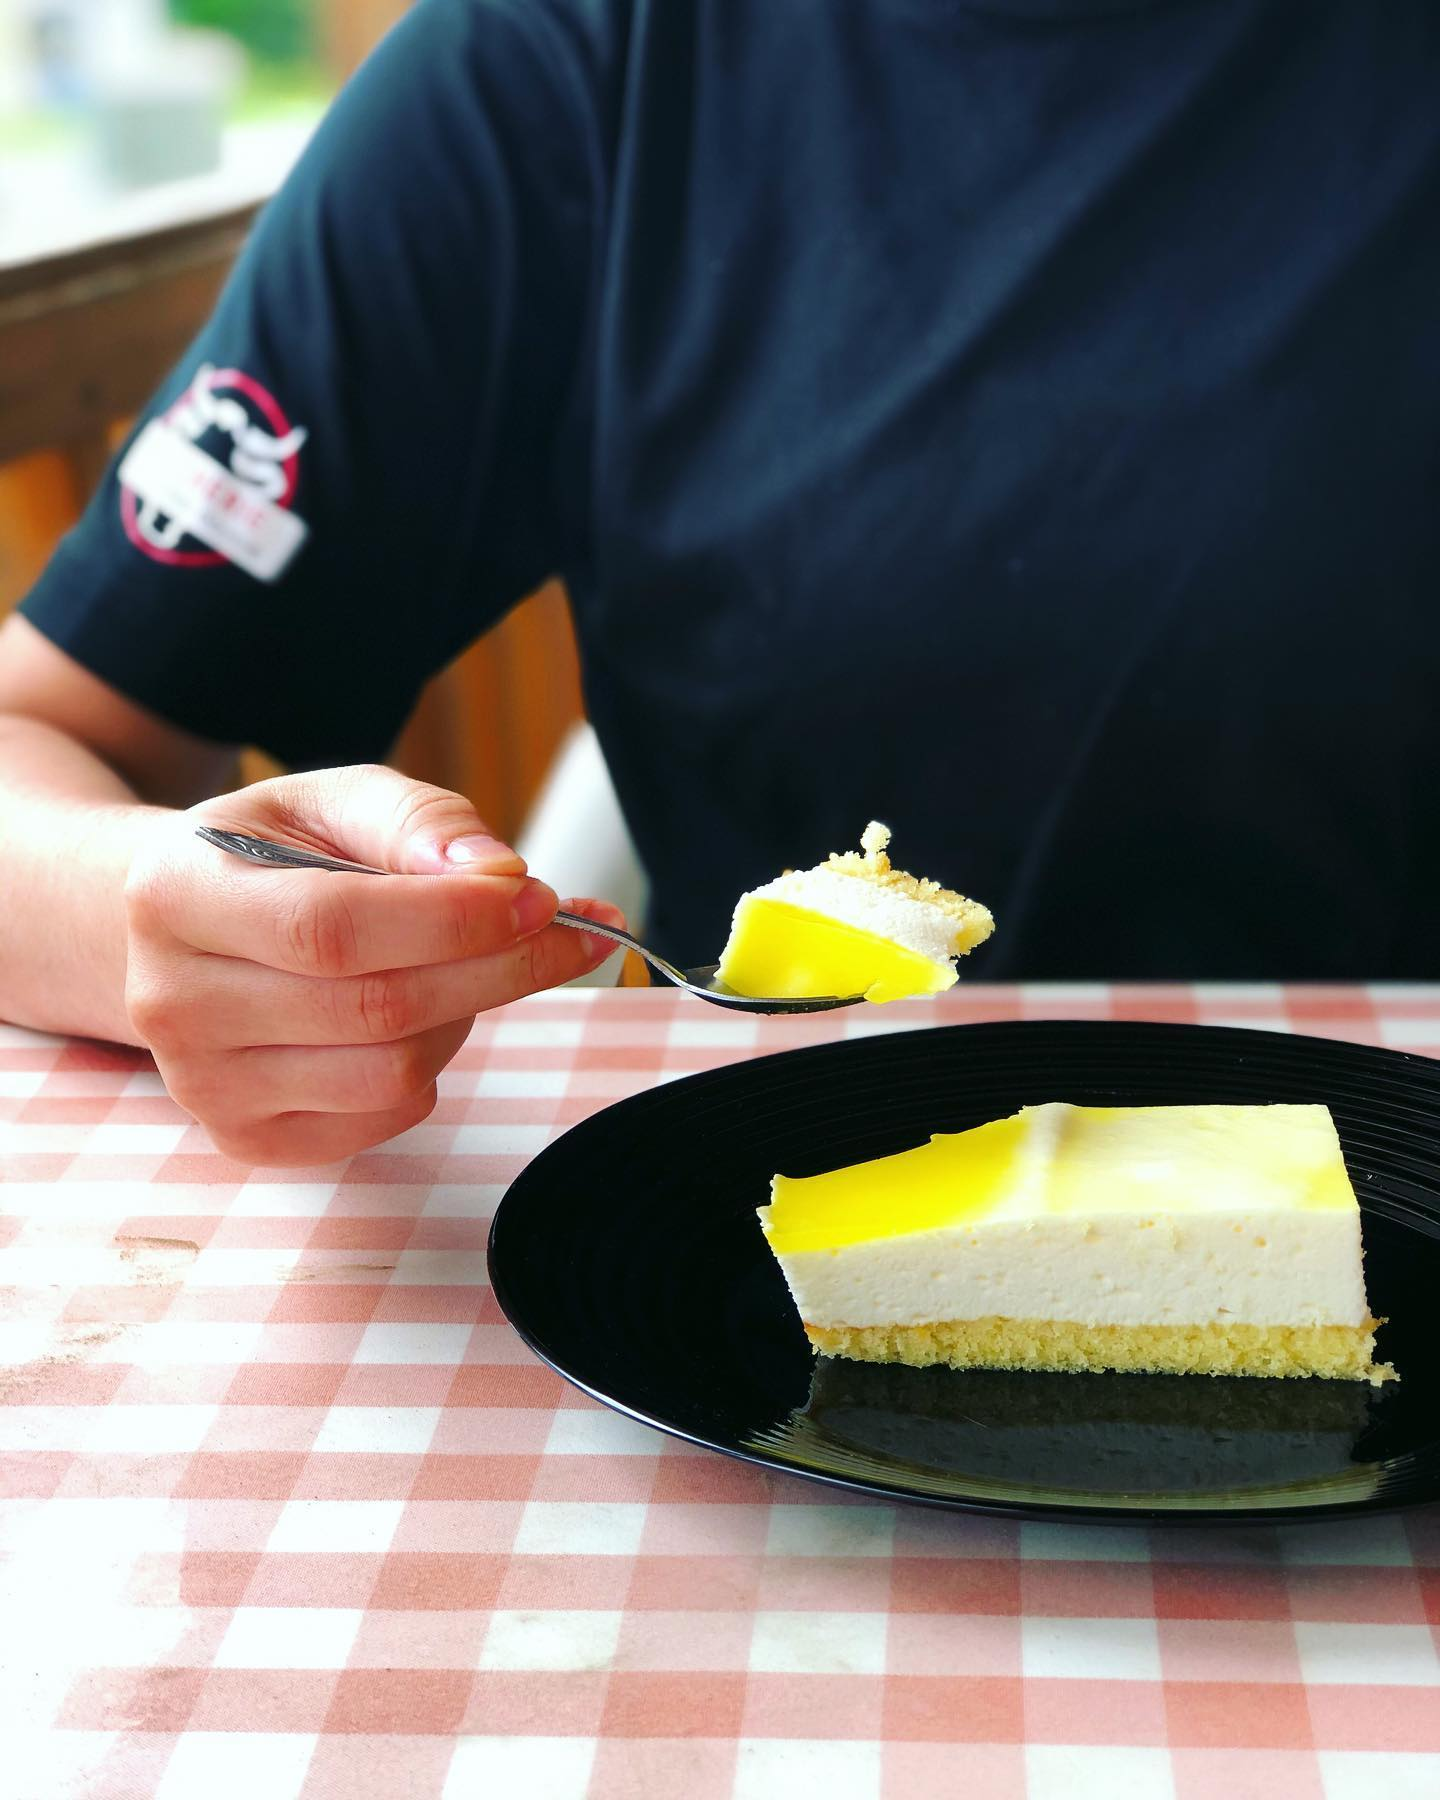 Gateau mousse au citron